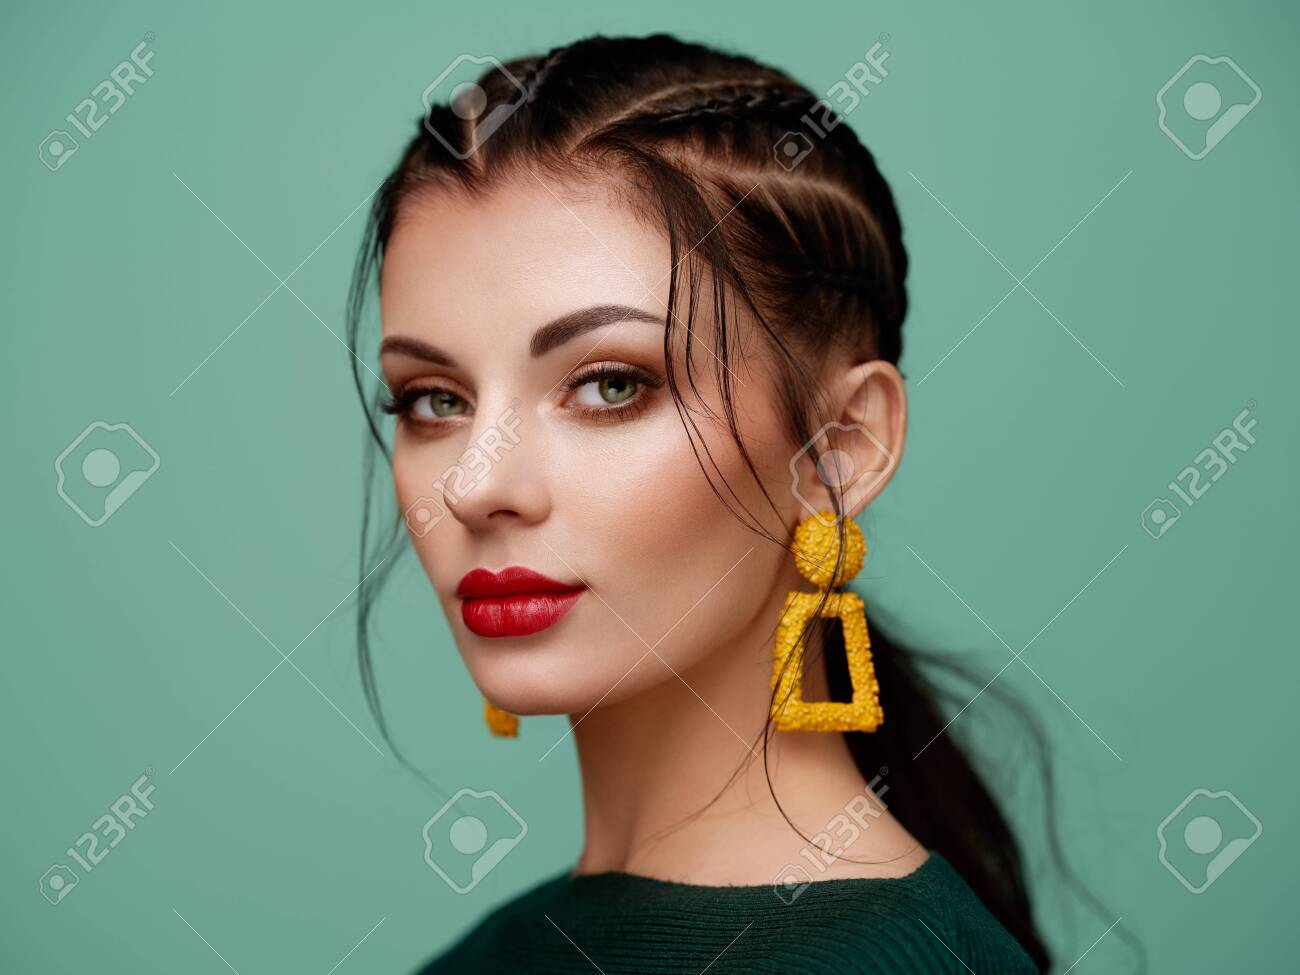 Brunette girl with perfect makeup. Beautiful model woman with curly hairstyle. Care and beauty hair products. Lady with braided hair. Model with jewelry. Turquoise background - 125293691